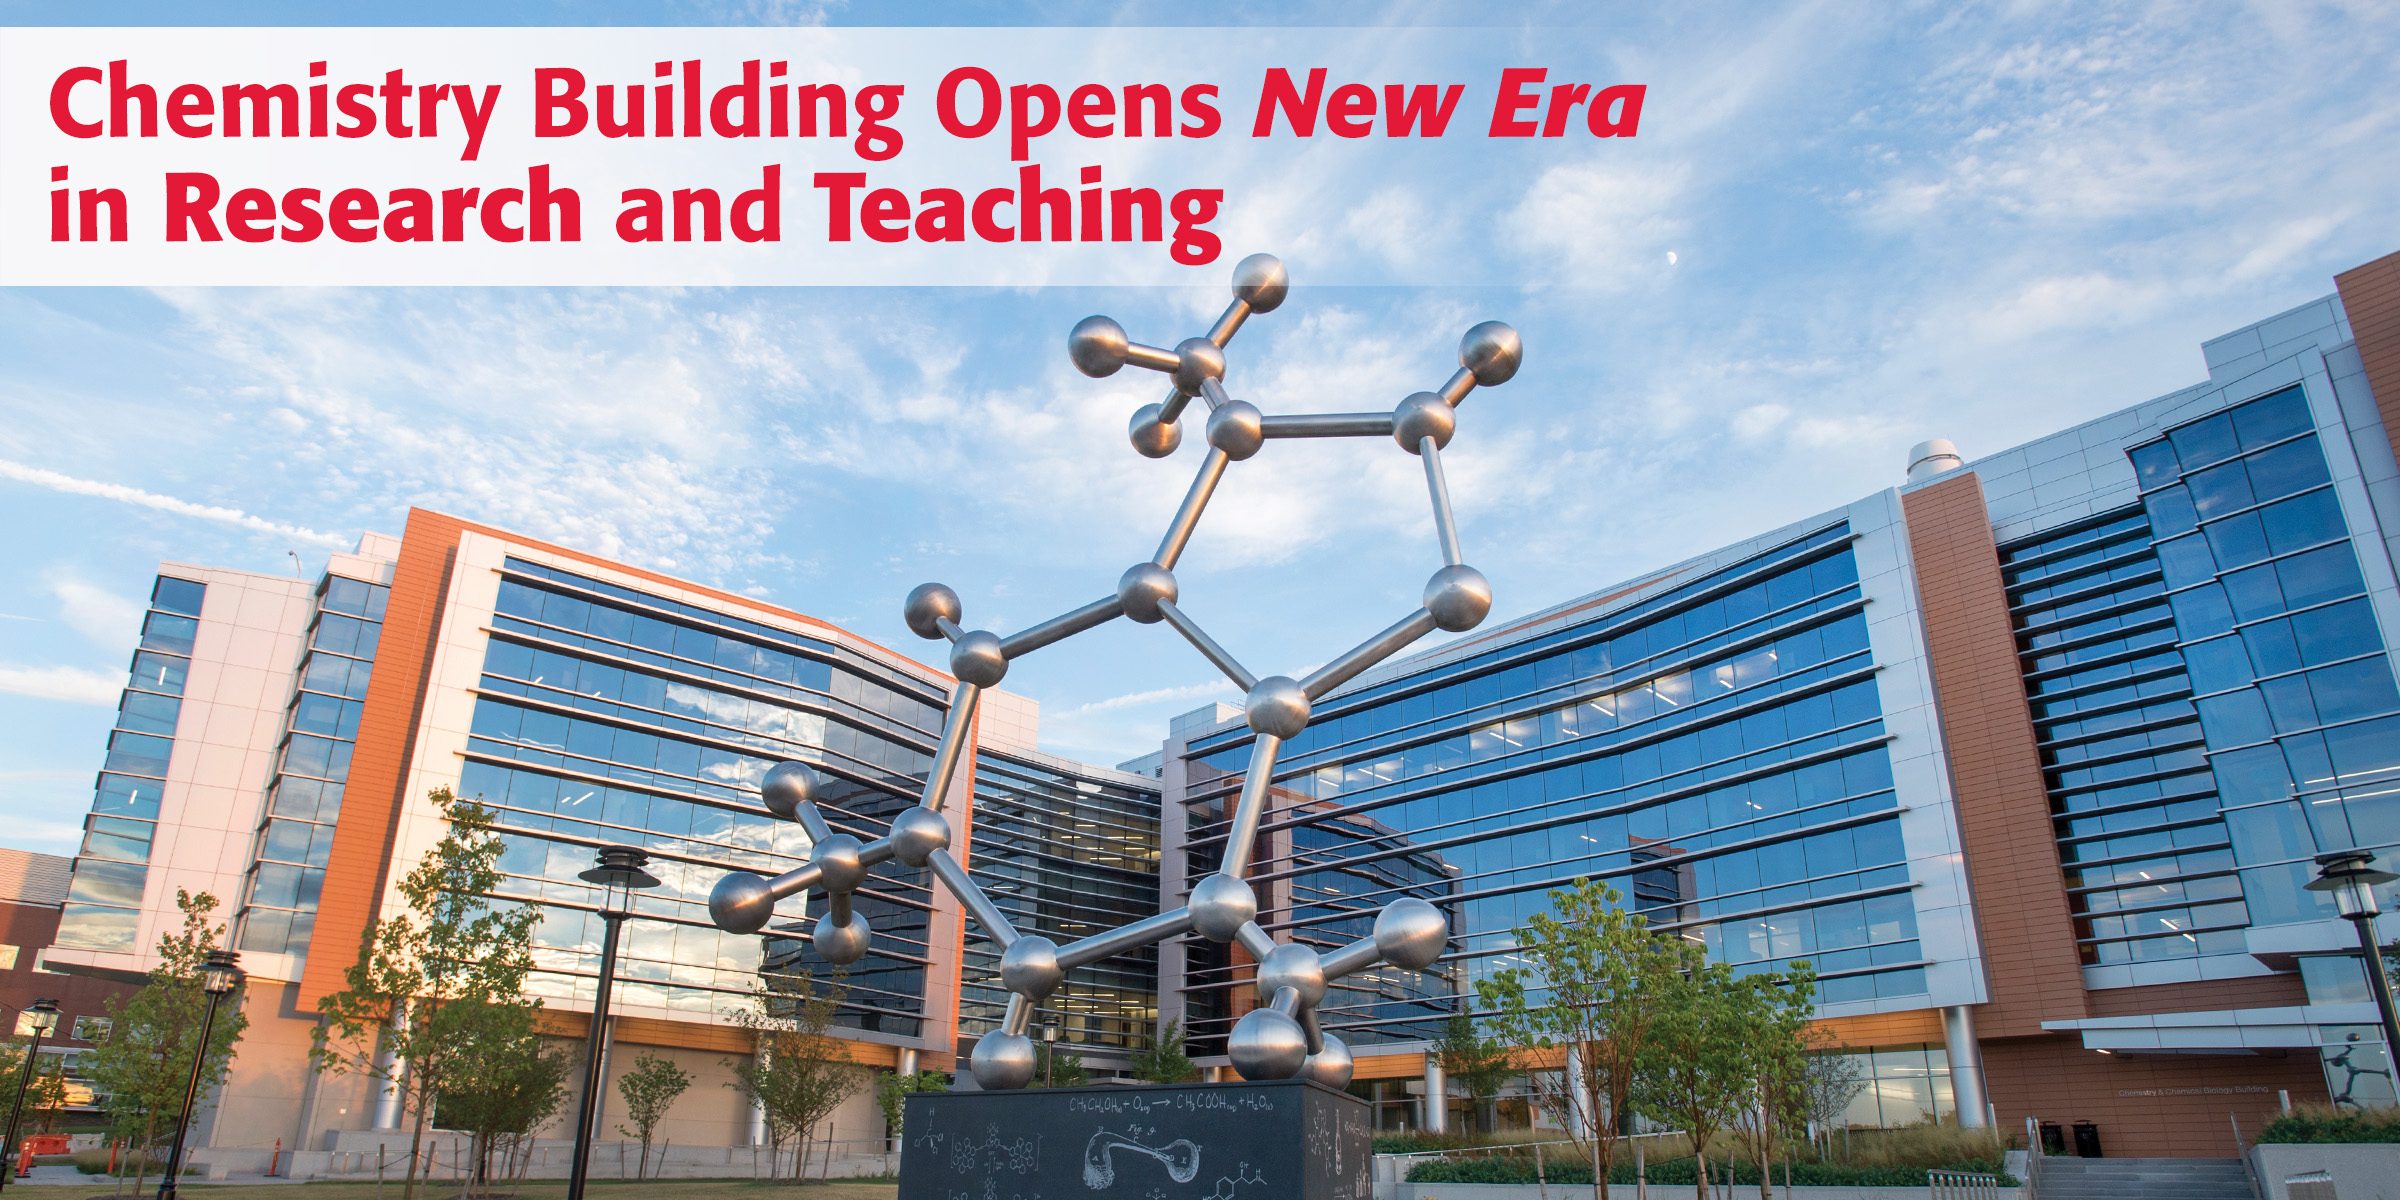 Chemistry Building Opens New Era in Research and Teaching